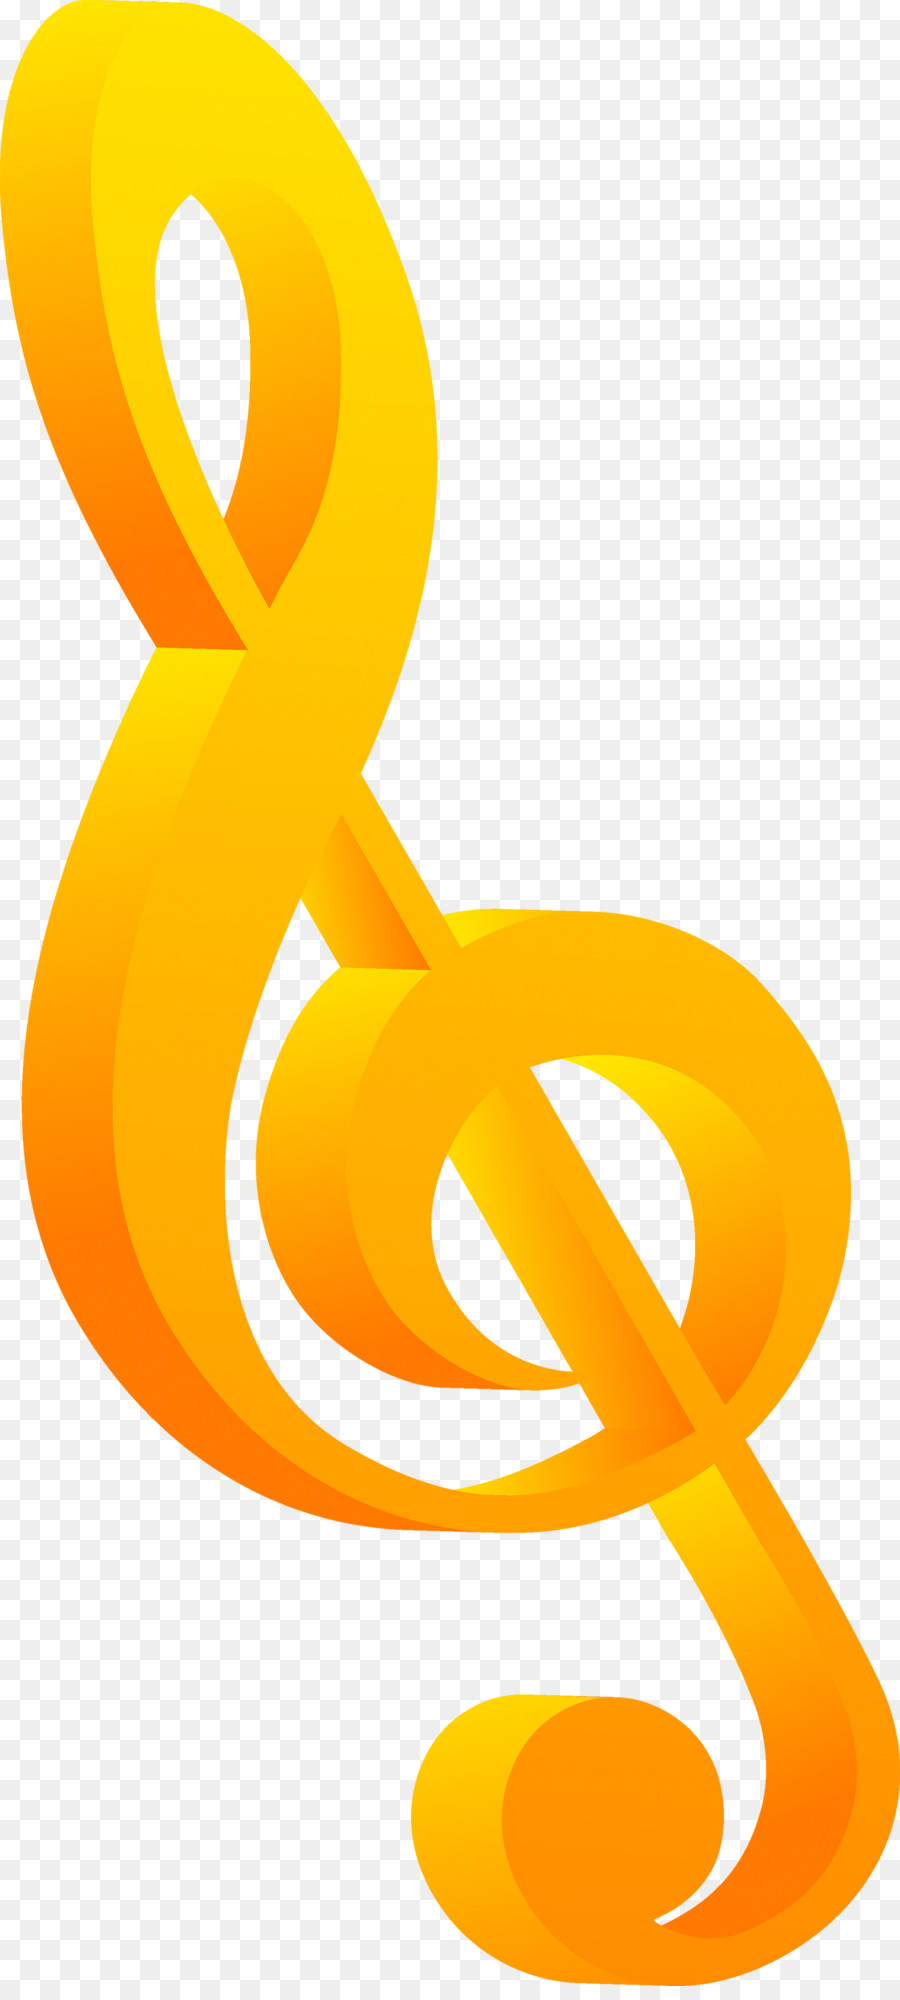 Musical note Clef Illustration - musical note png download - 1300 ...